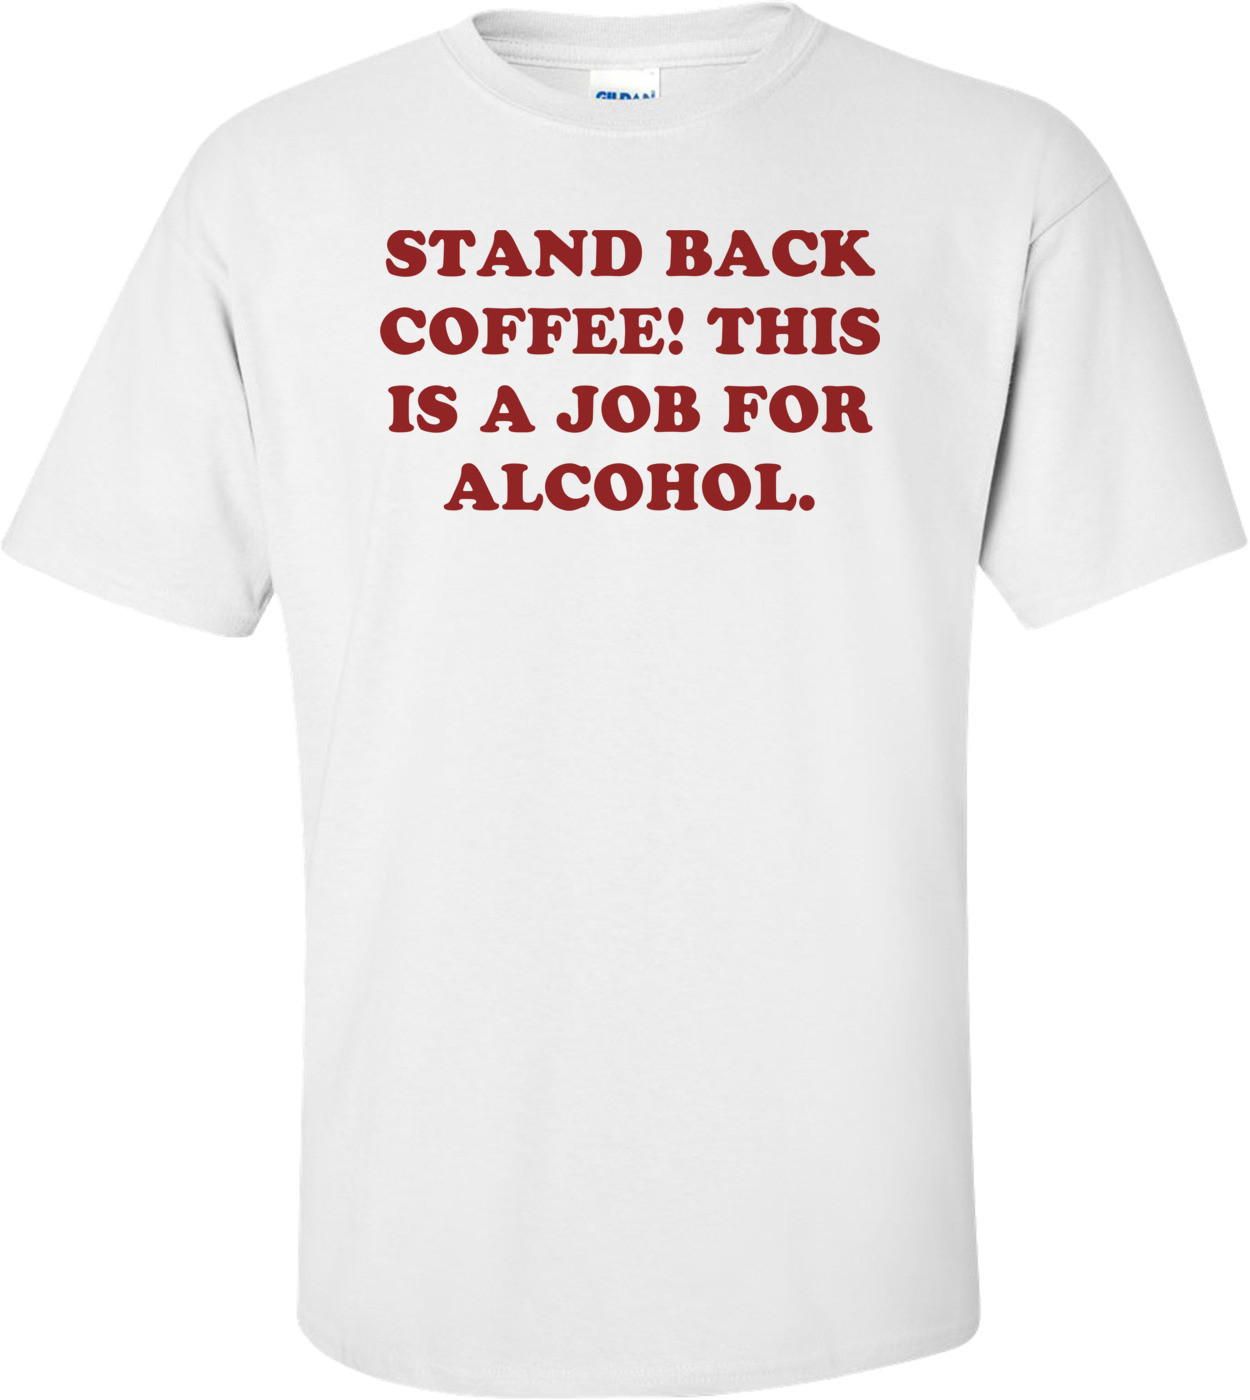 STAND BACK COFFEE! THIS IS A JOB FOR ALCOHOL. Shirt